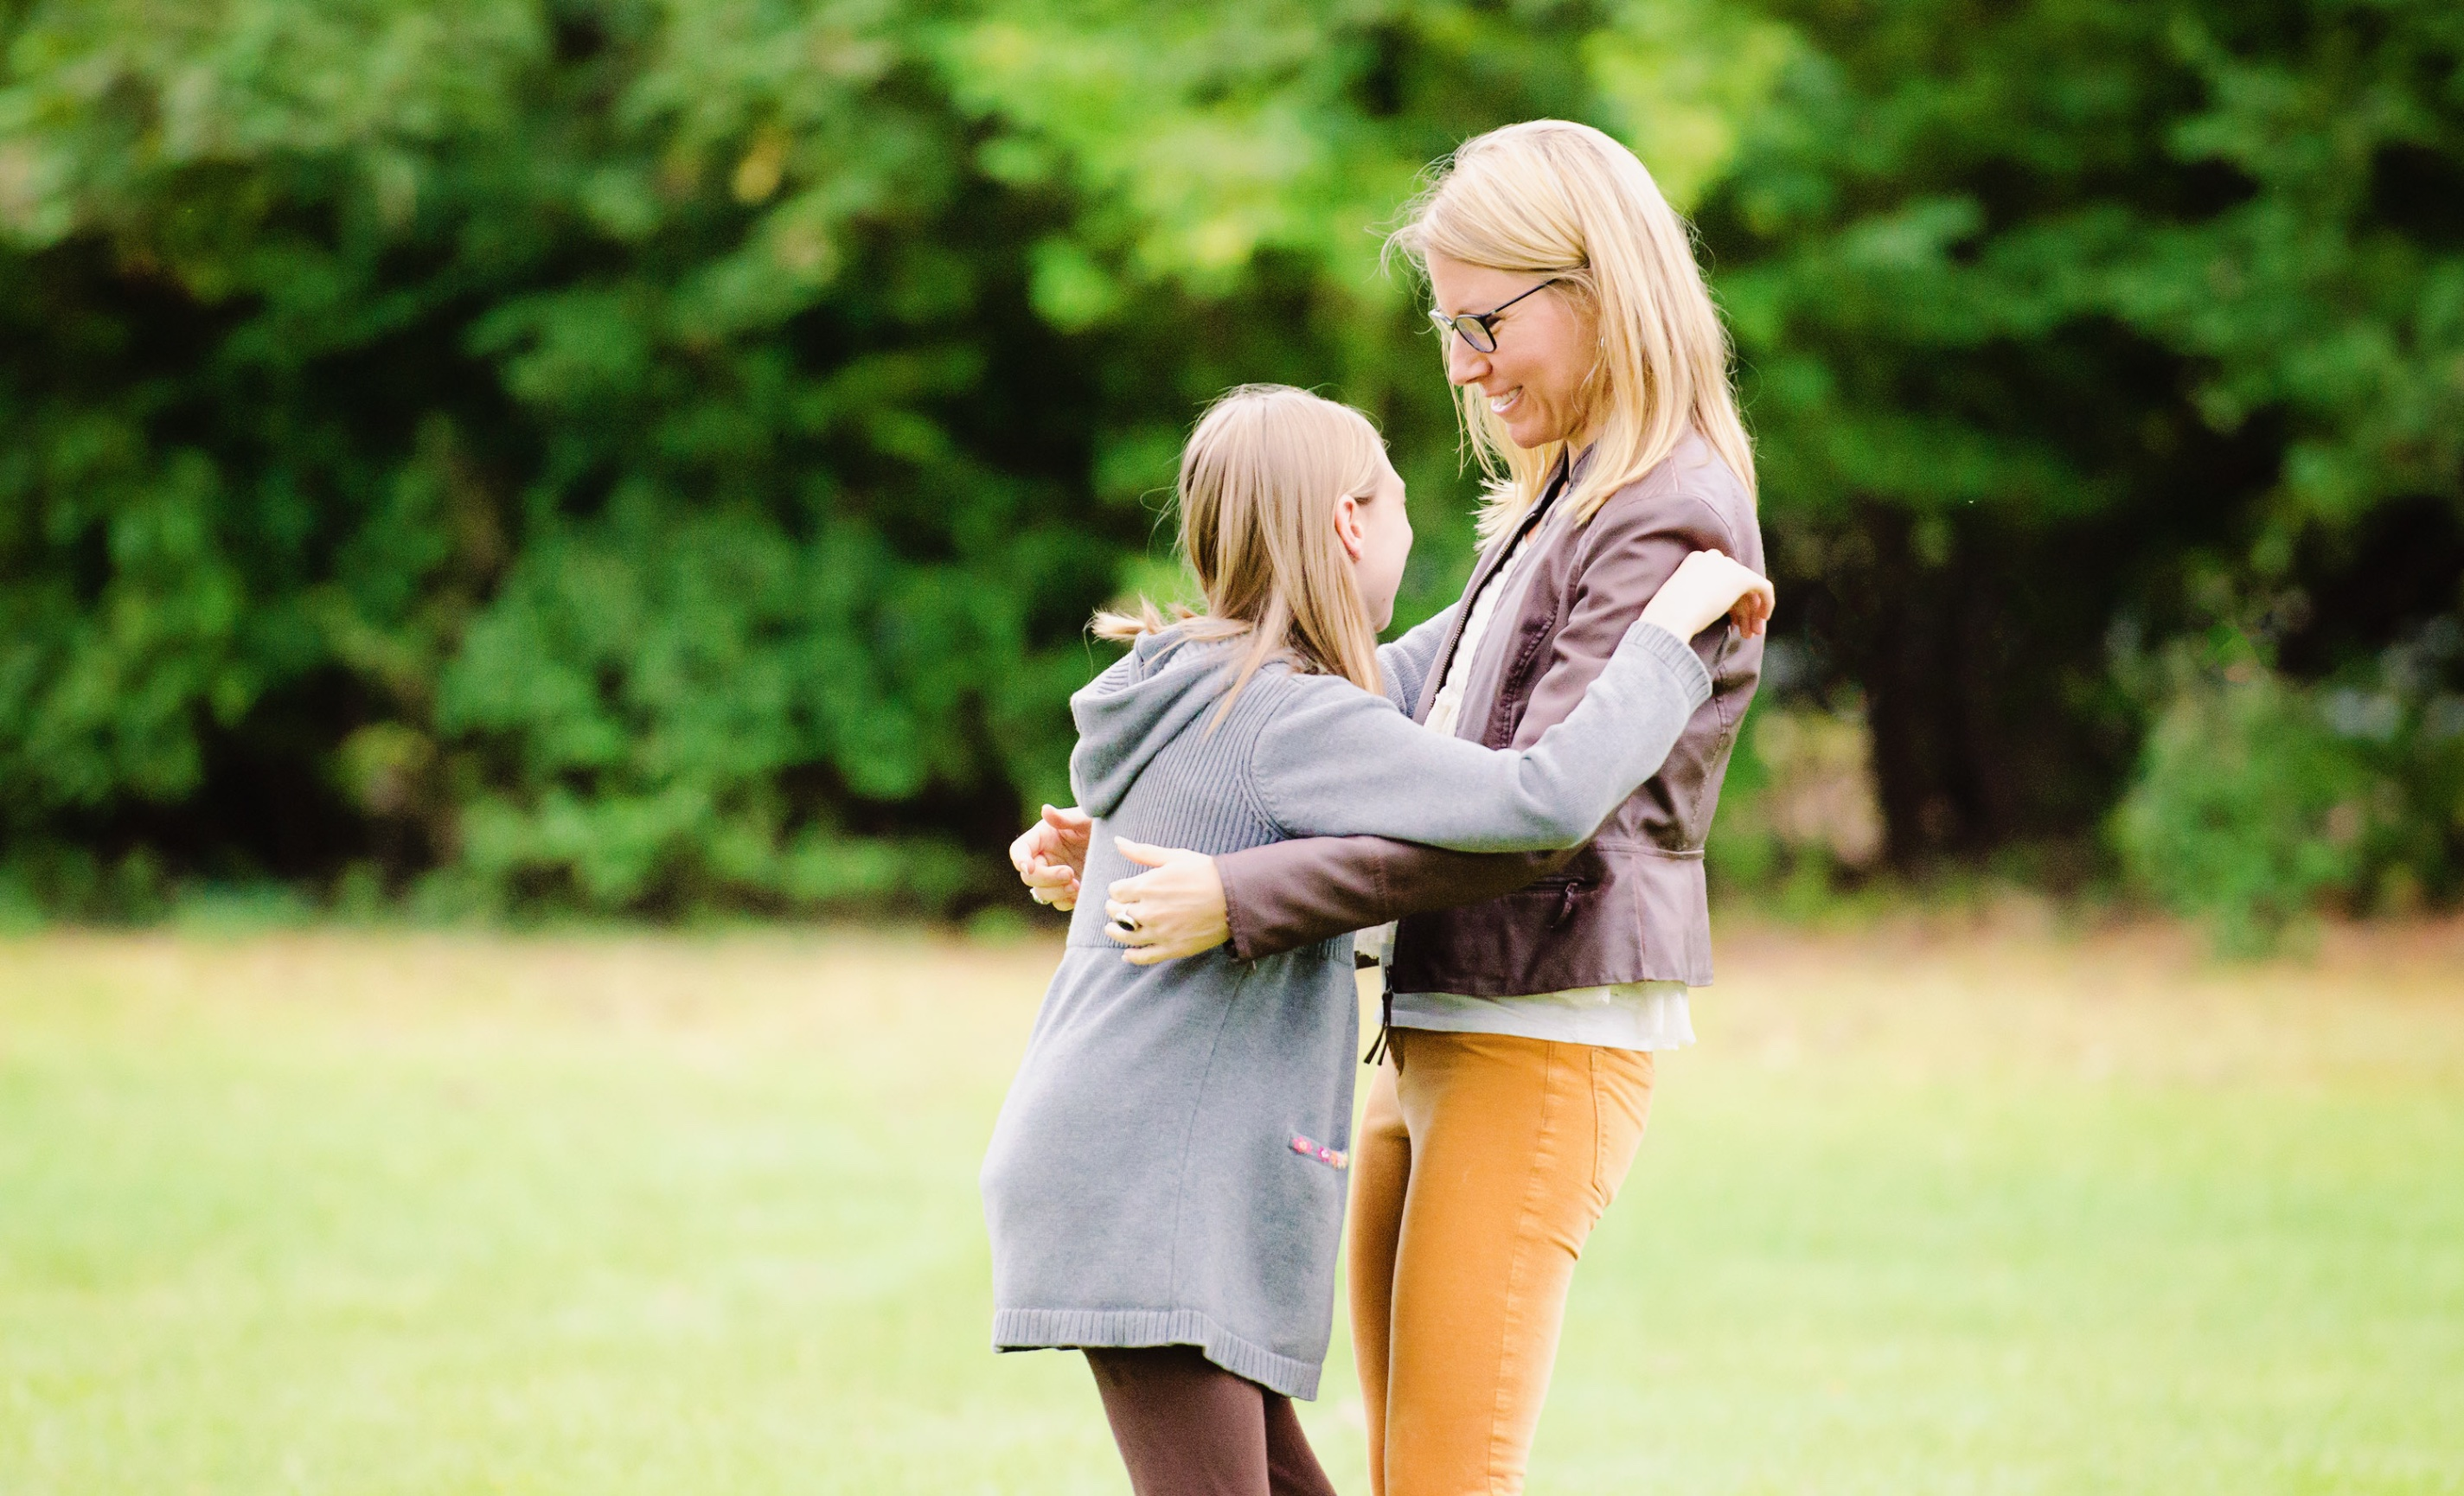 Astrology Session for You - Luminary Parenting with Tara Vogel